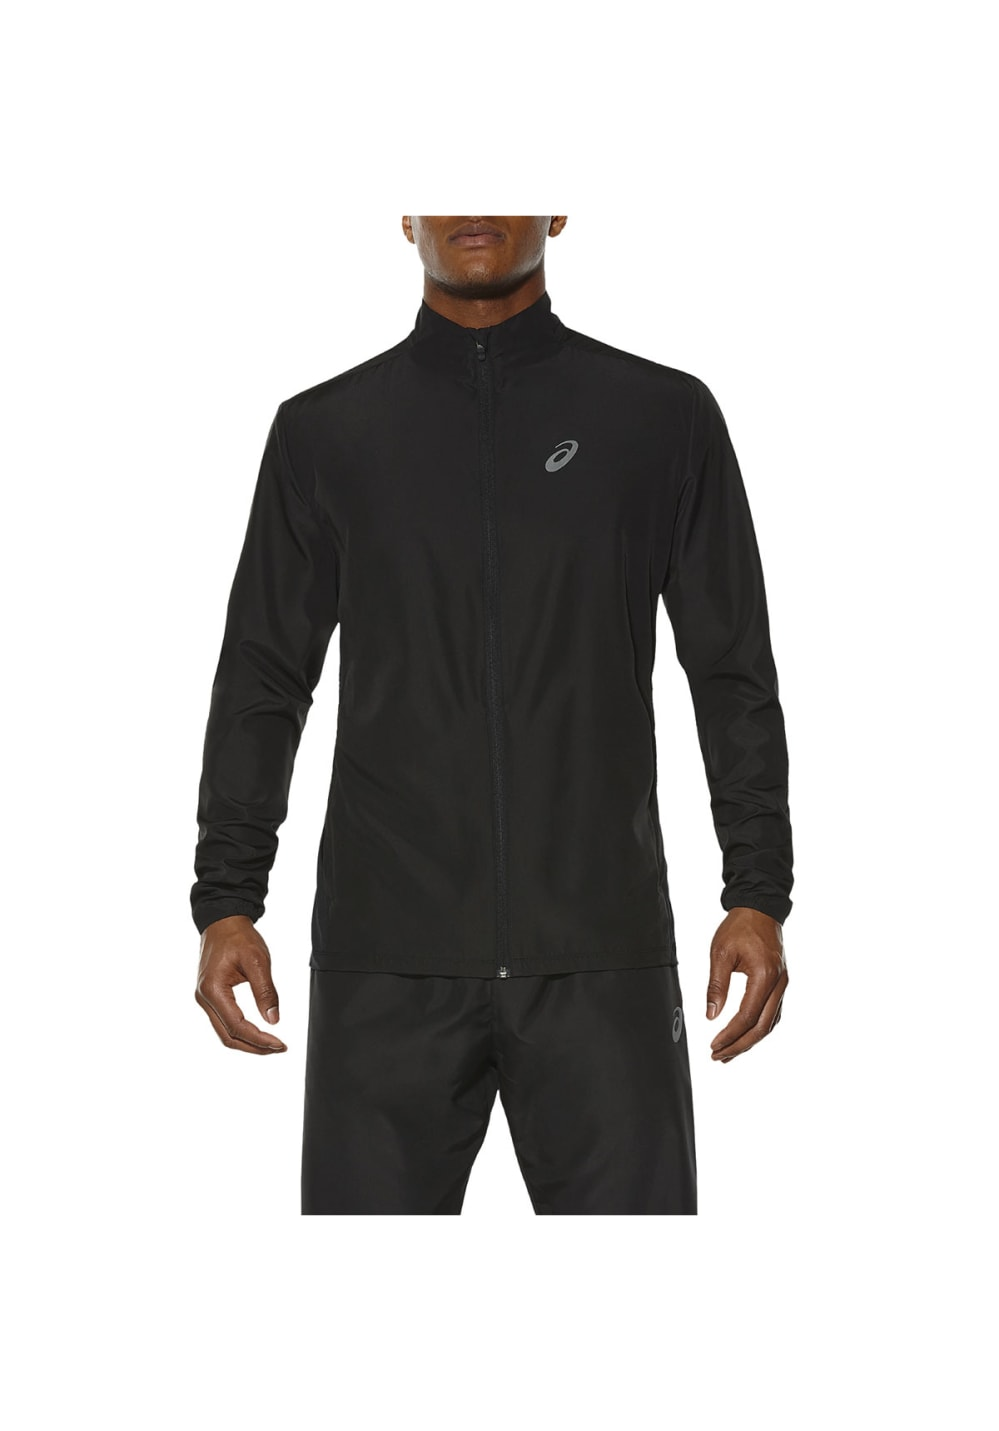 ASICS Jacket Hommes Maillot course